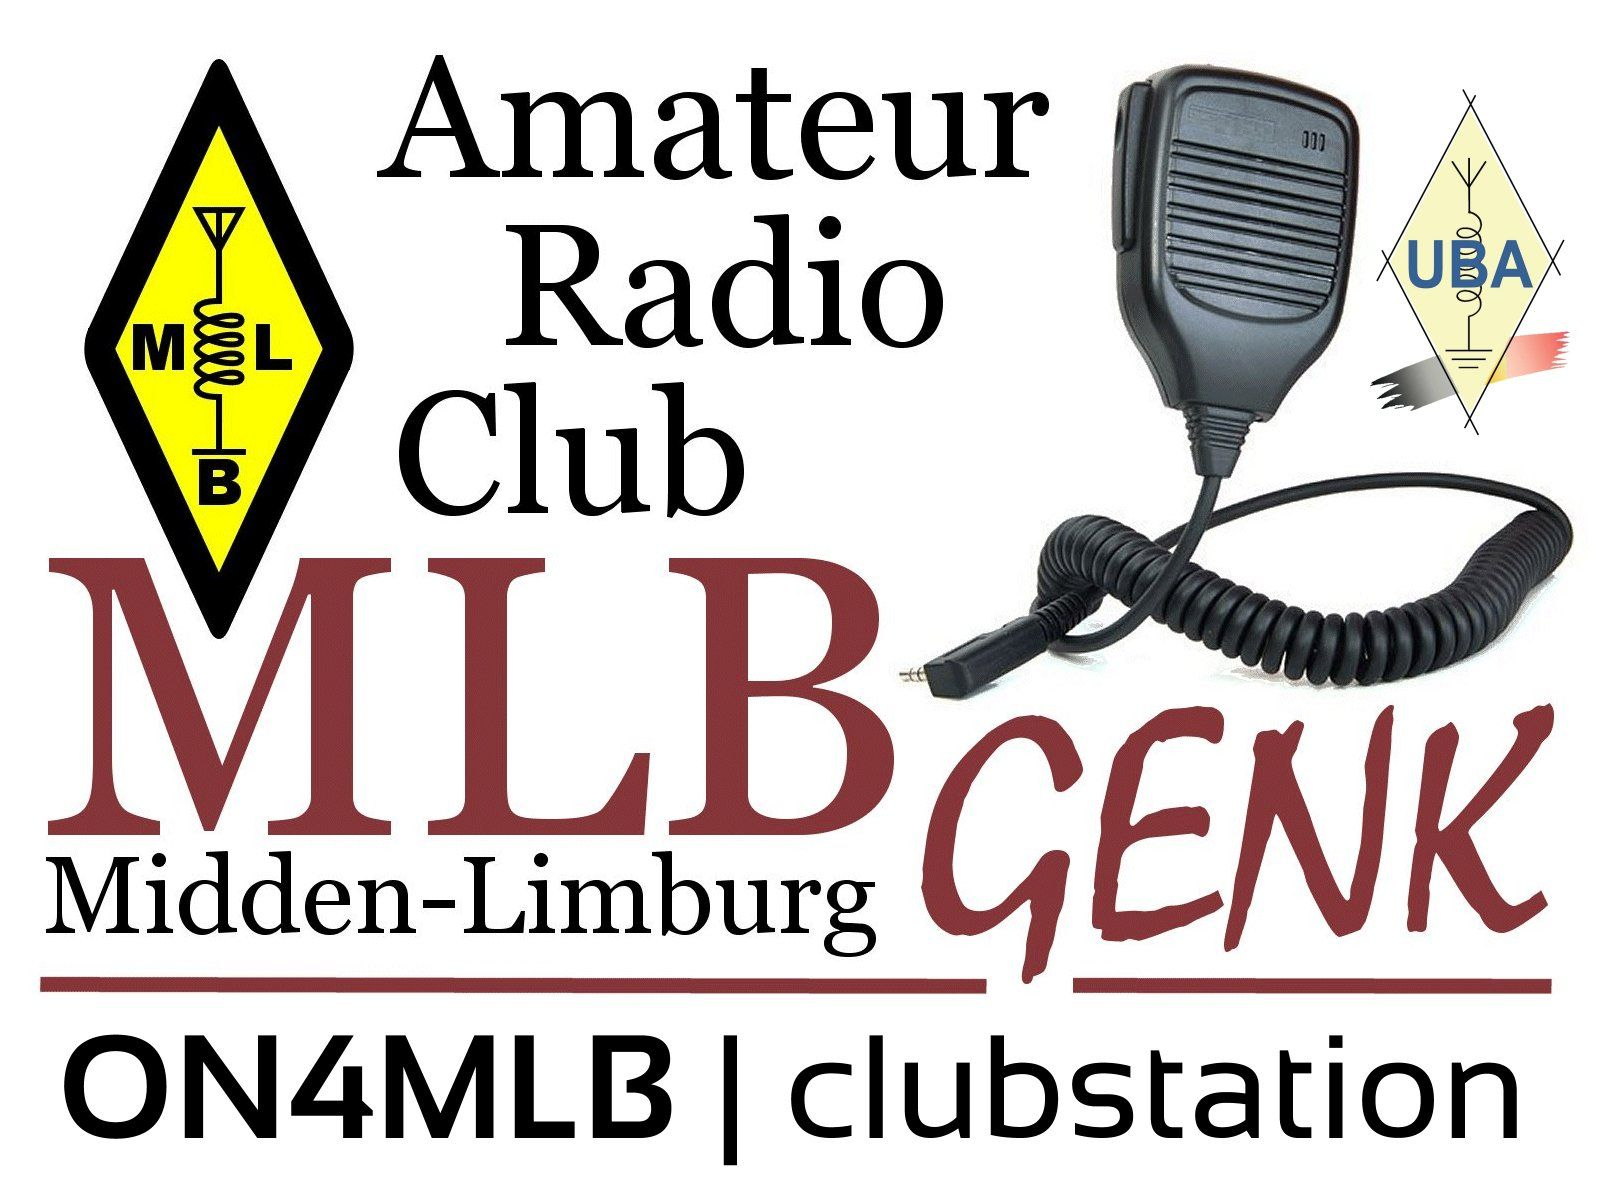 ON4MLB | clubstation